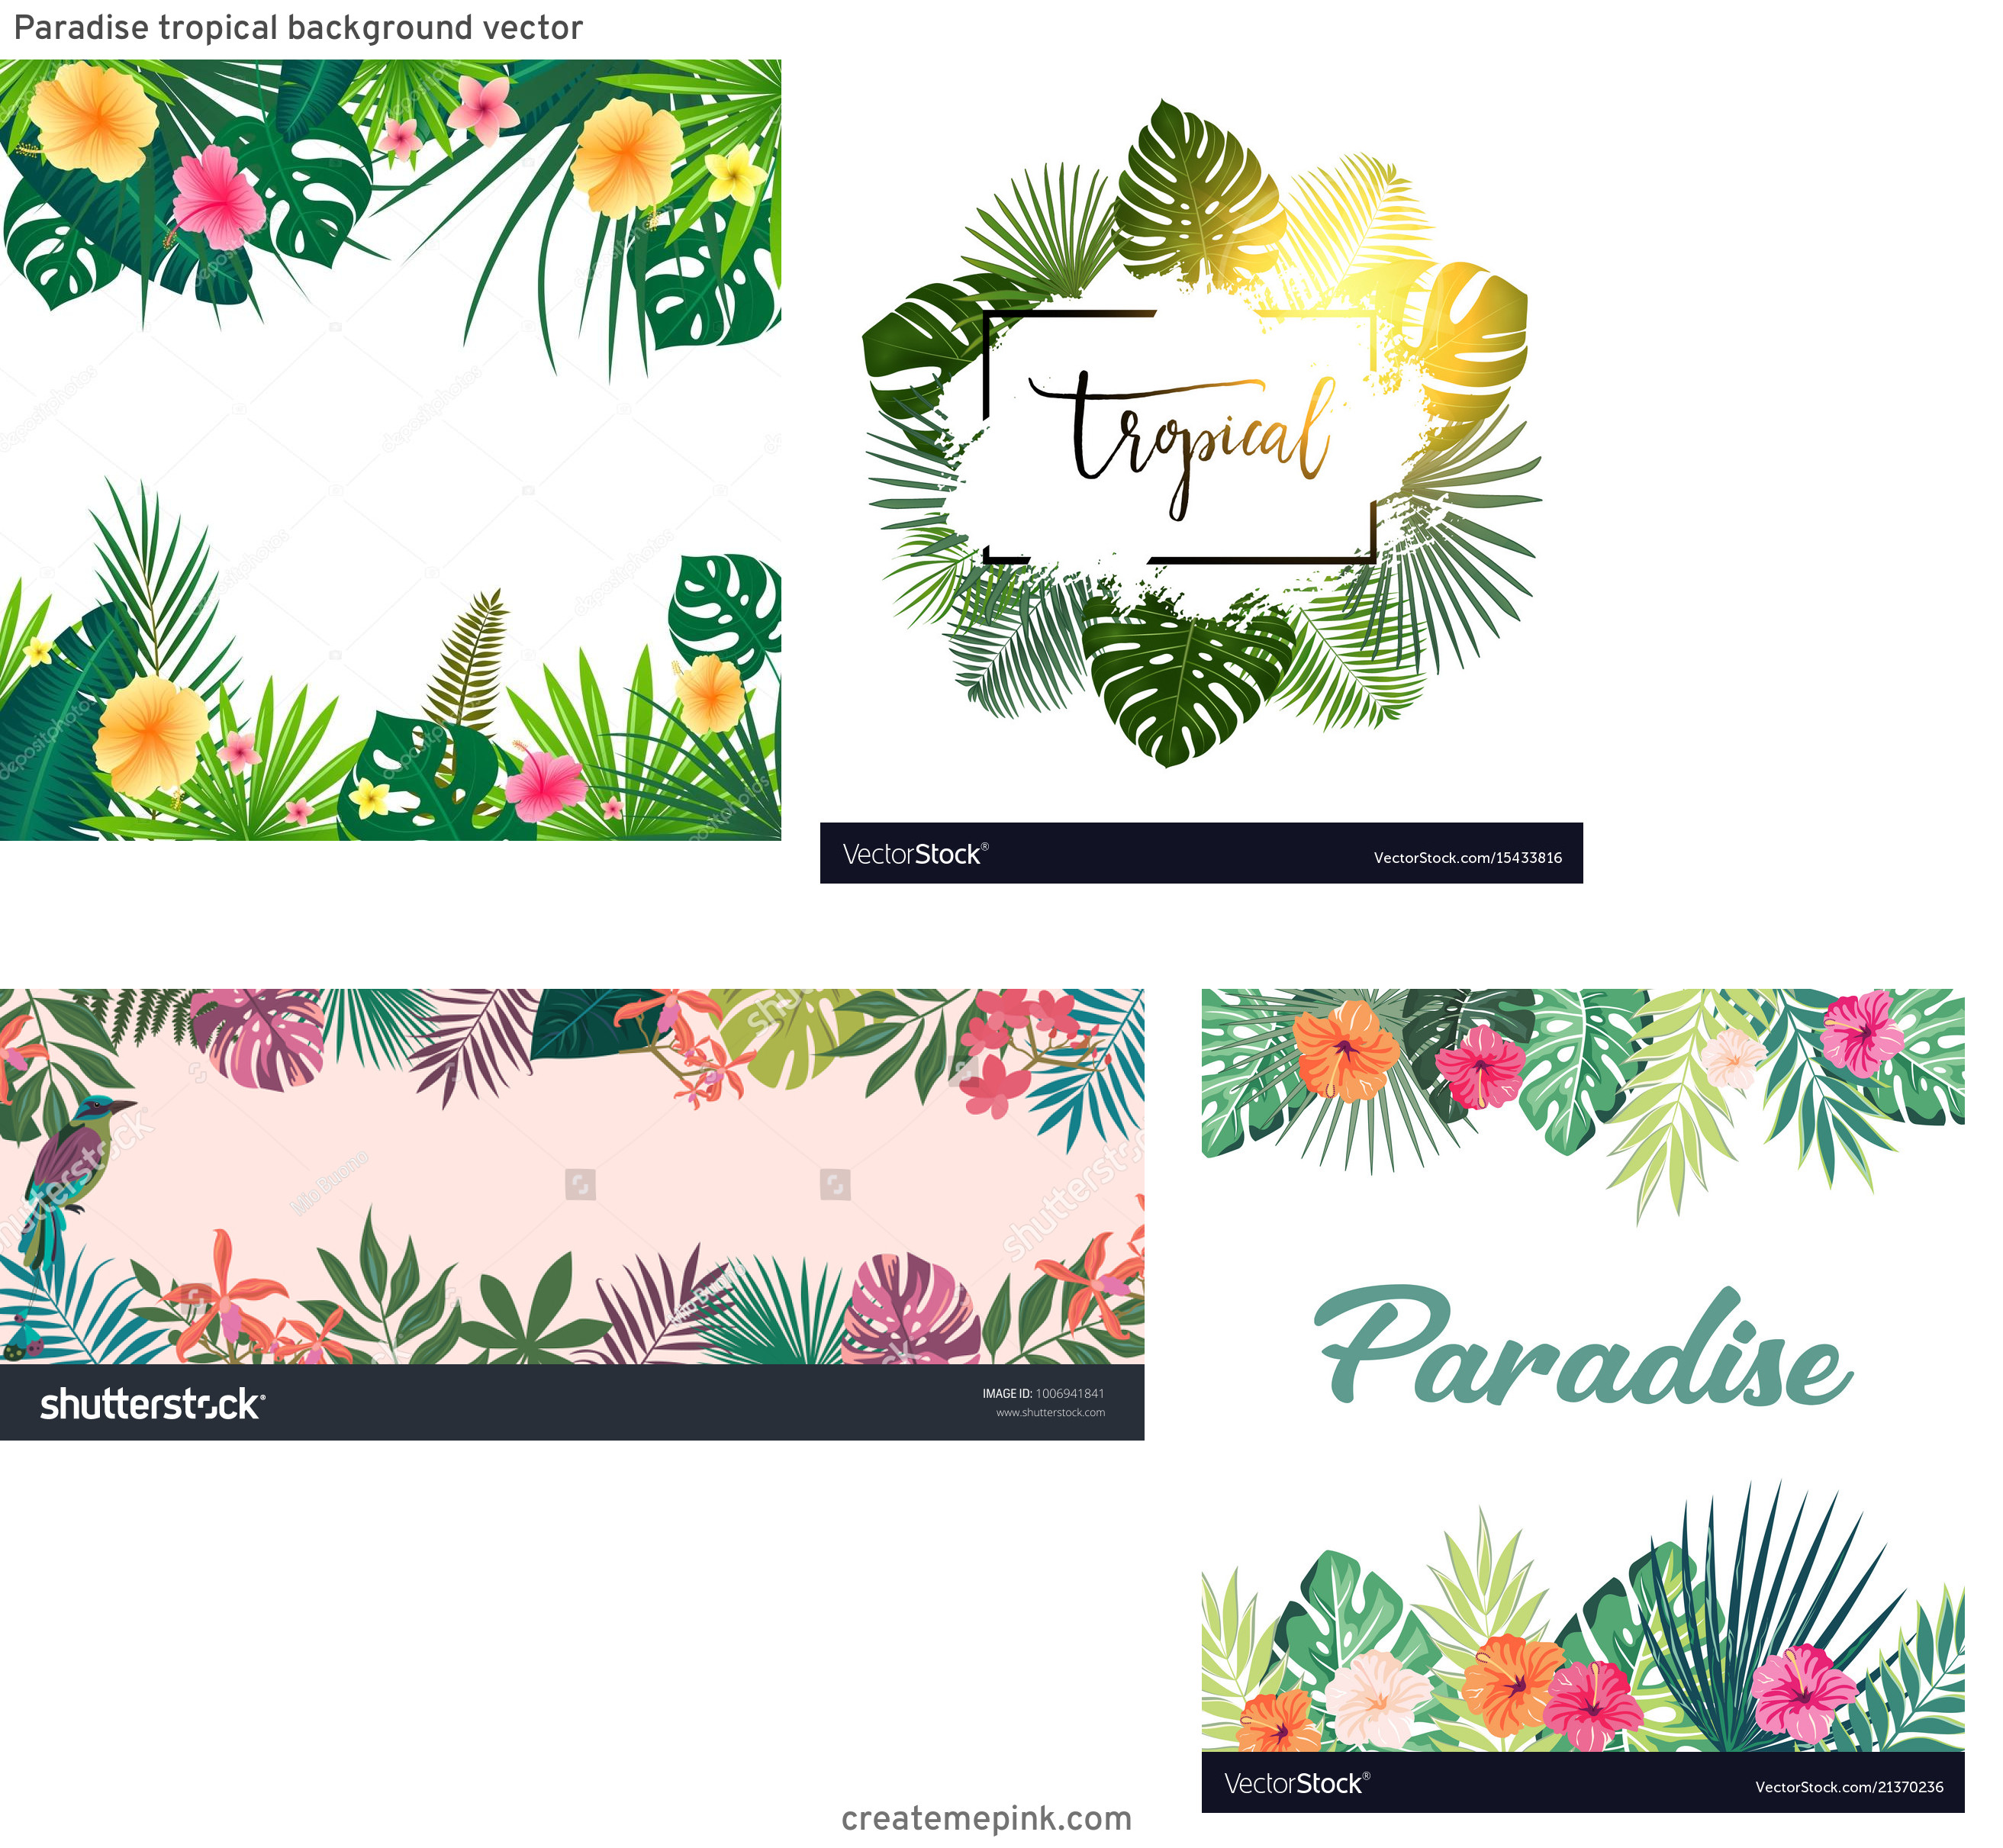 Tropical Background Vector: Paradise Tropical Background Vector